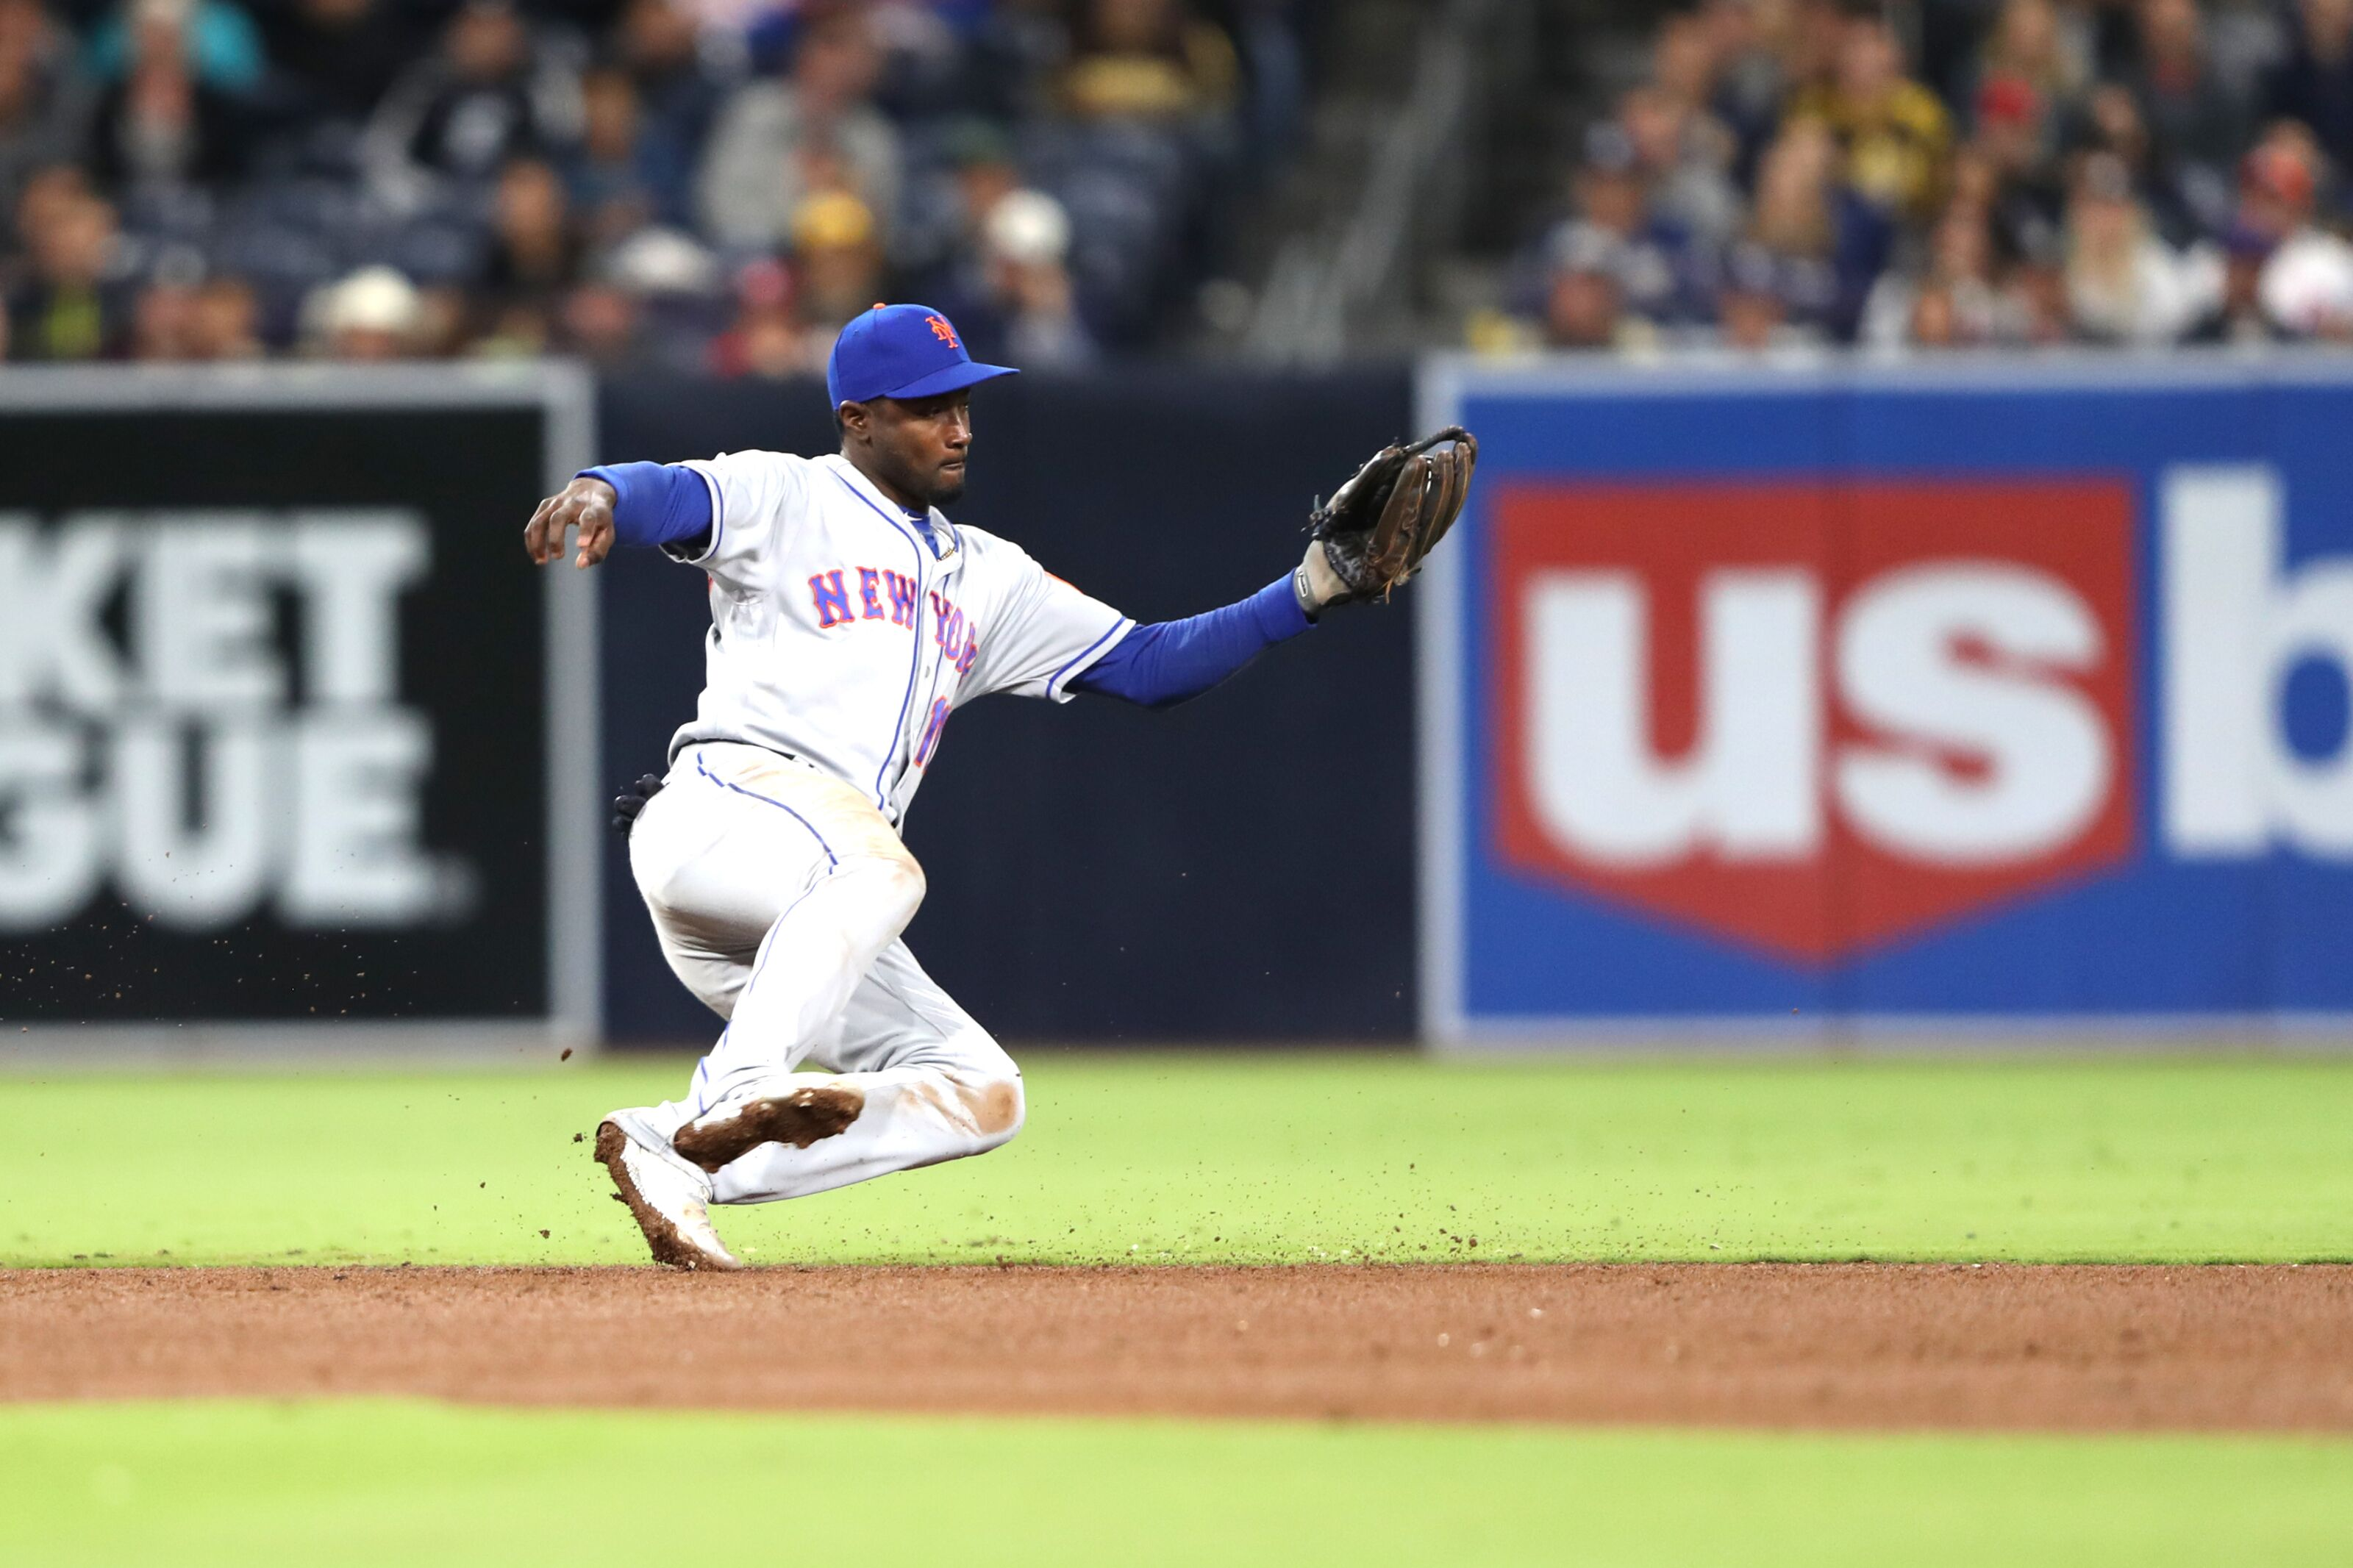 Baltimore Orioles Rumors: There's Real Interest In IF Adeiny Hechavarria